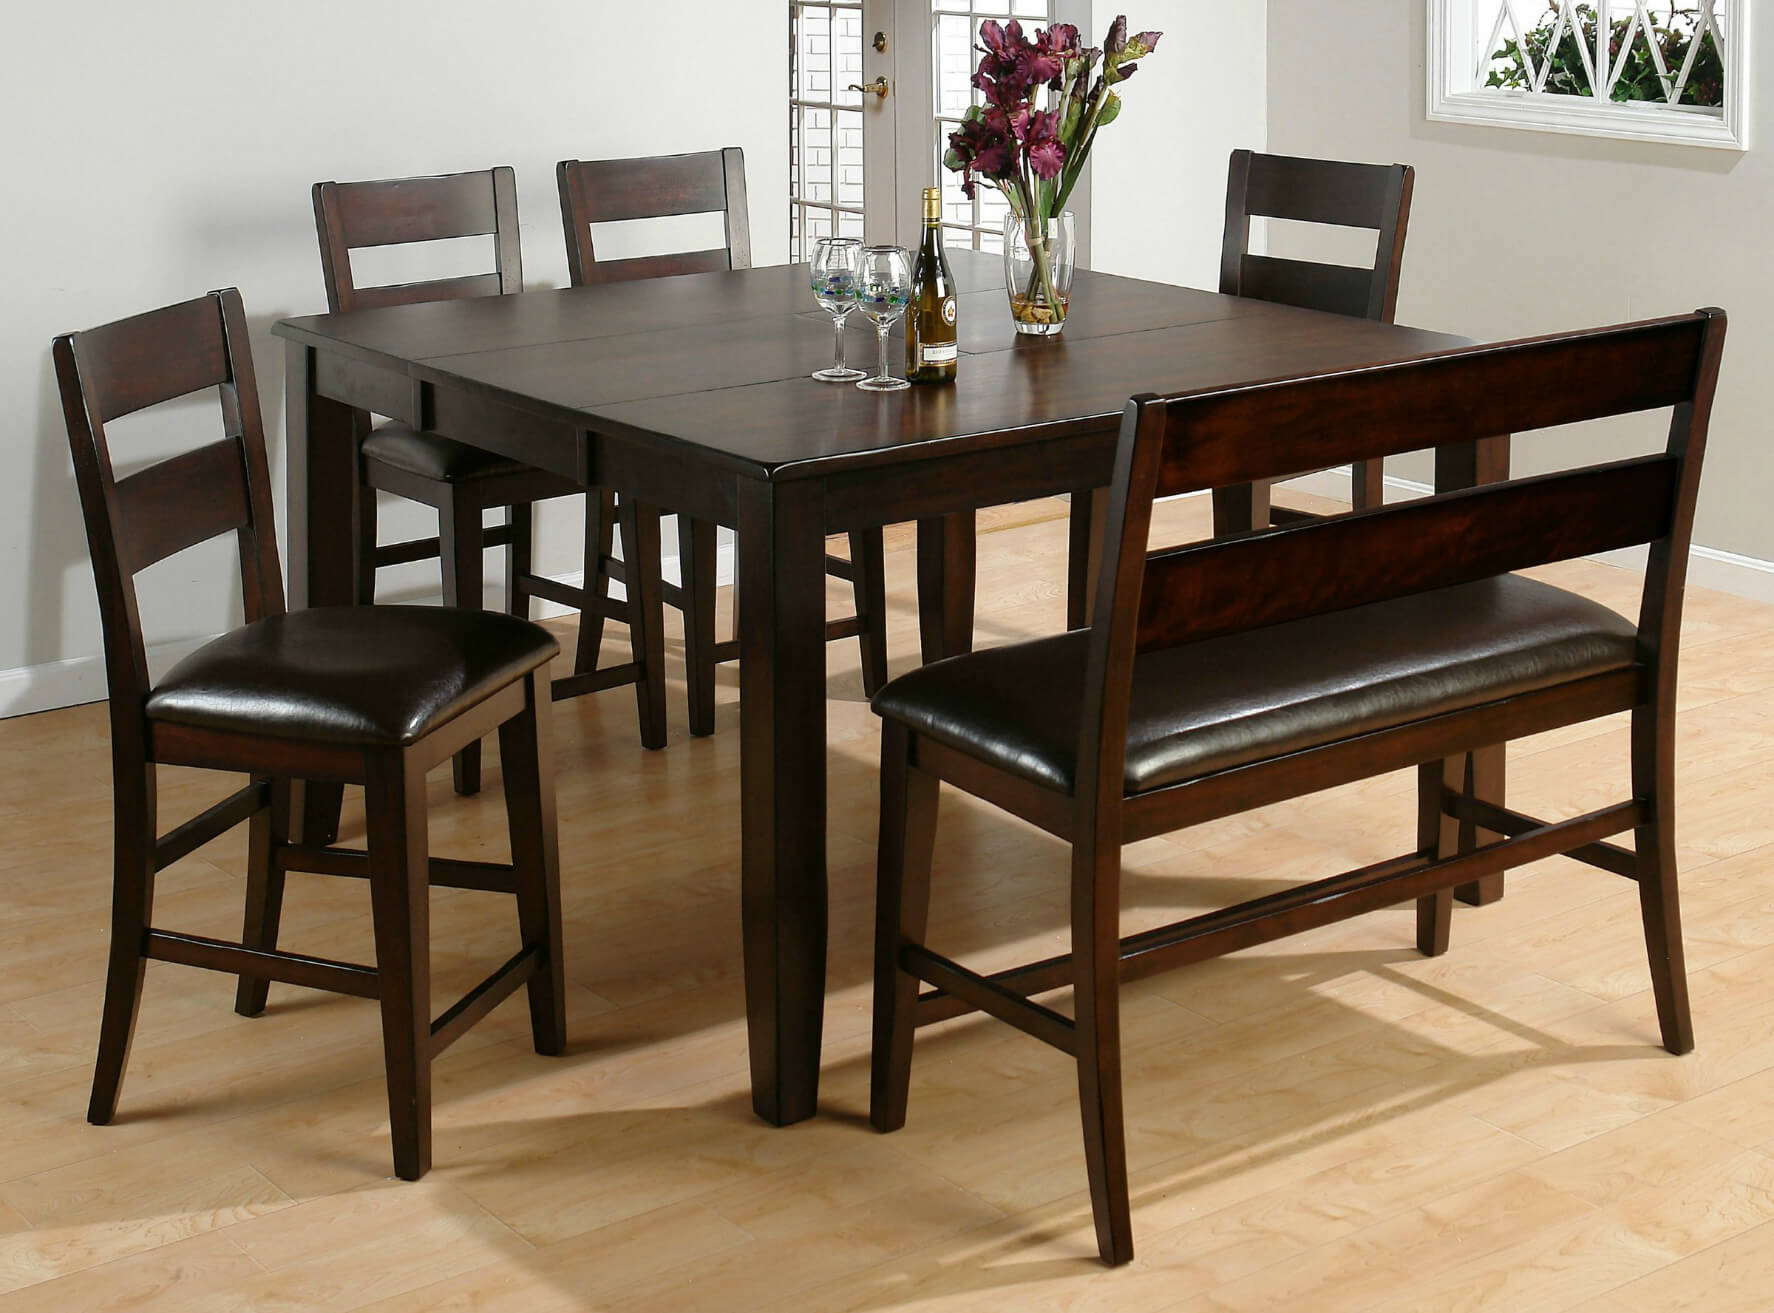 heres a counter height square dining room table with bench moreover the bench includes - Height Of Dining Room Table